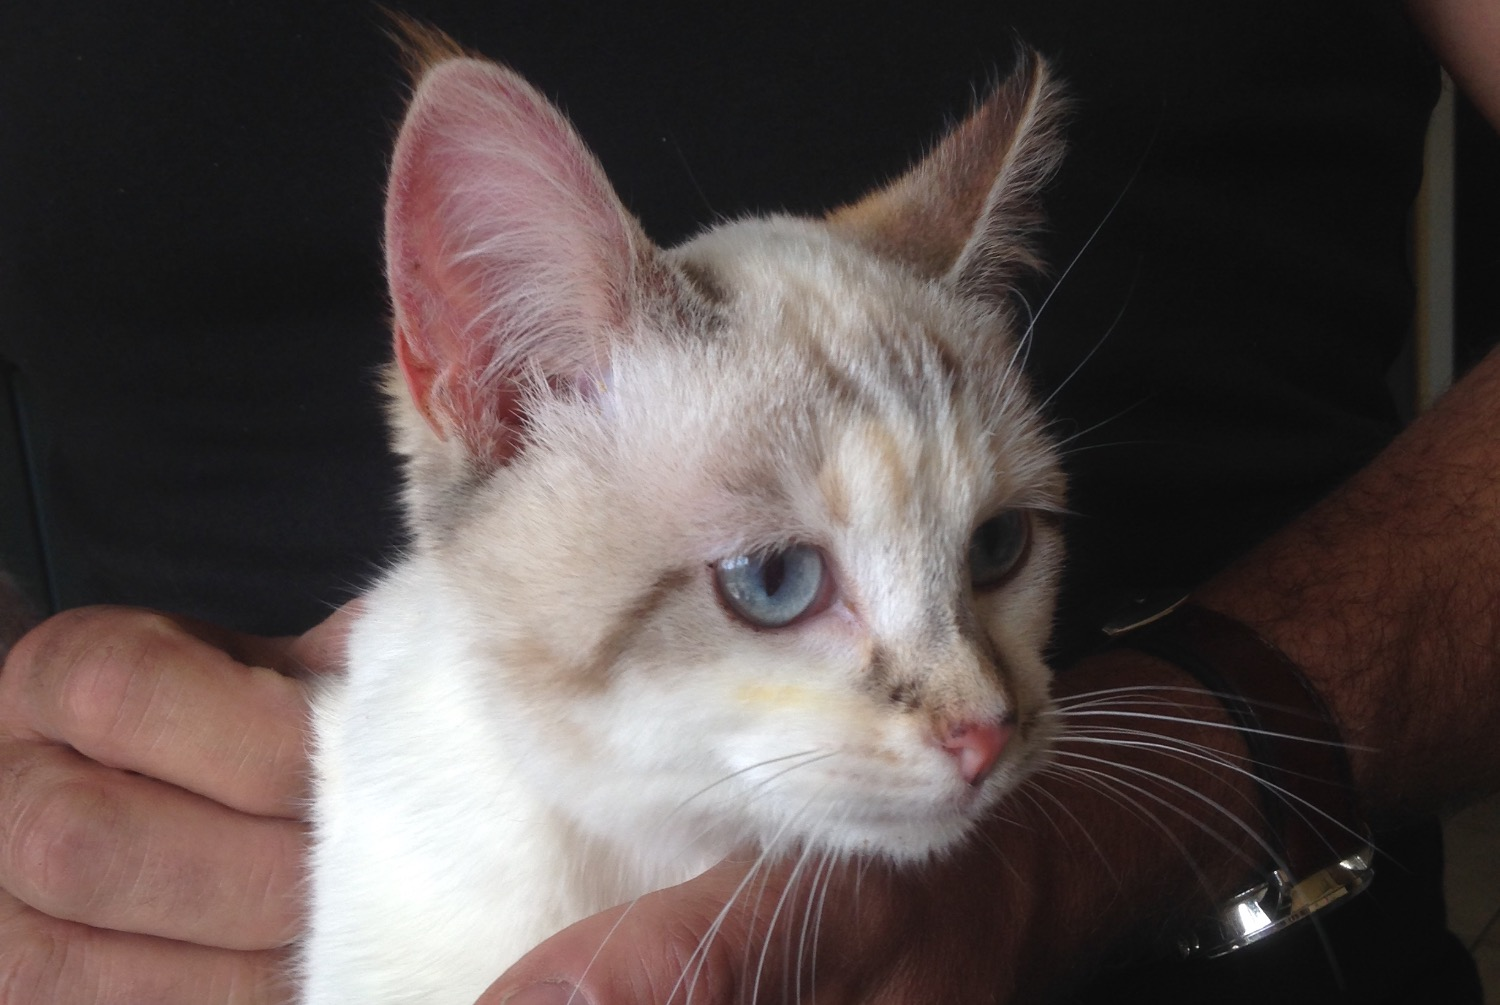 Discovery alert Cat Female , Between 4 and 6 months Thèreval France